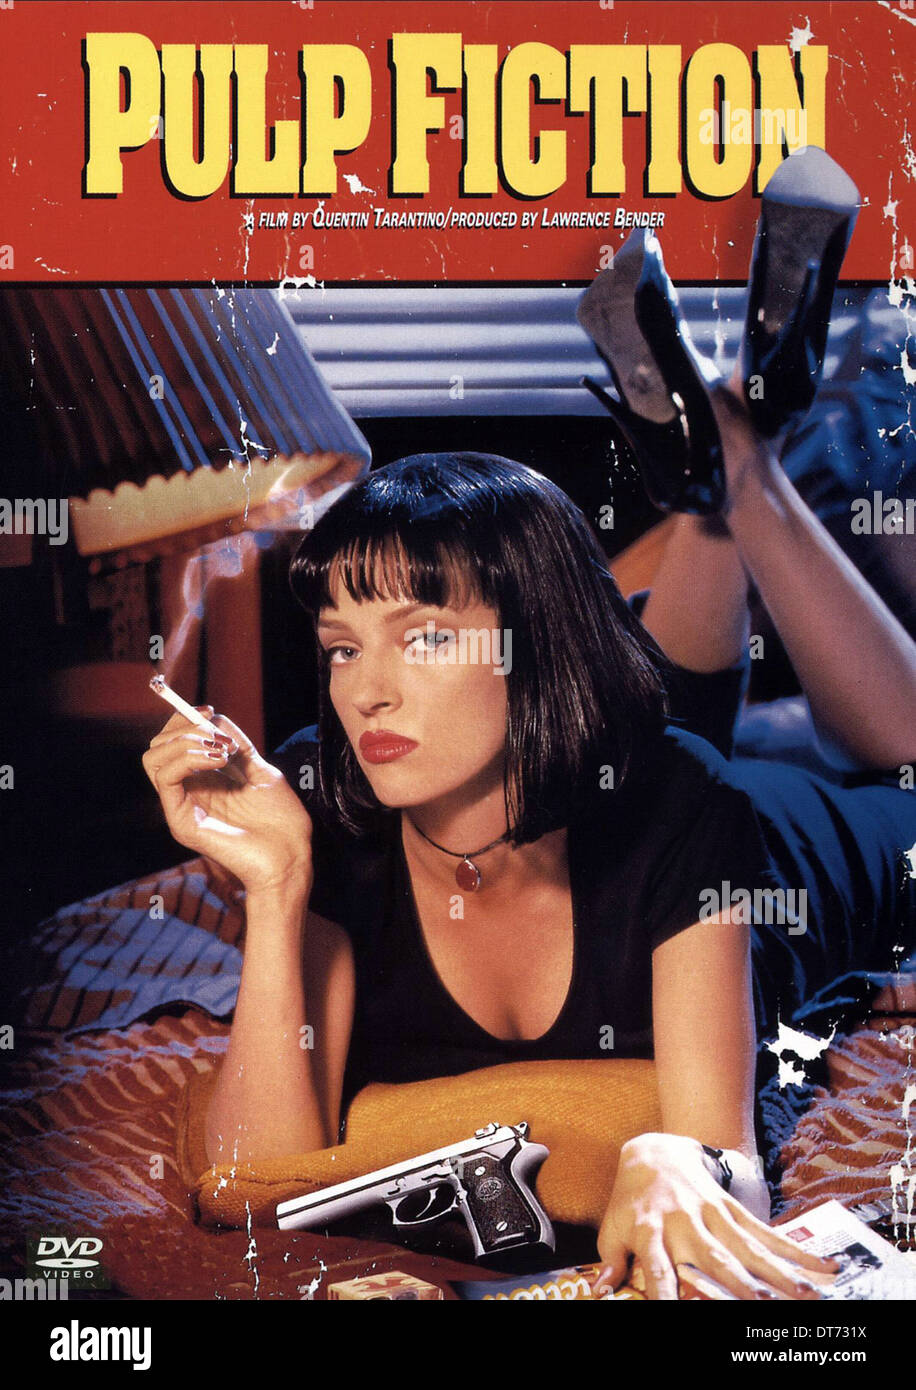 poster pelicula pulp fiction